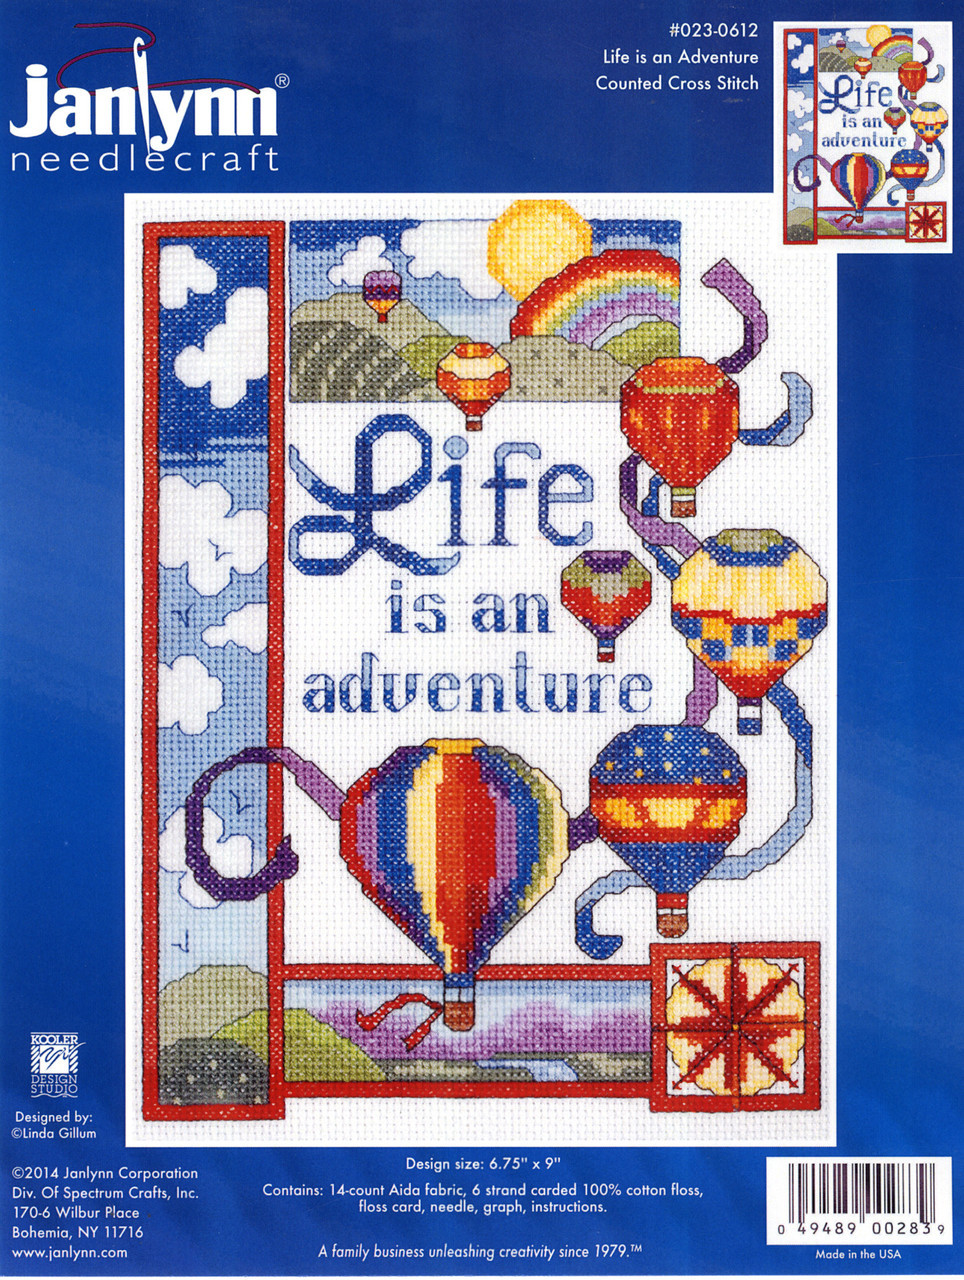 Janlynn - Life is an Adventure